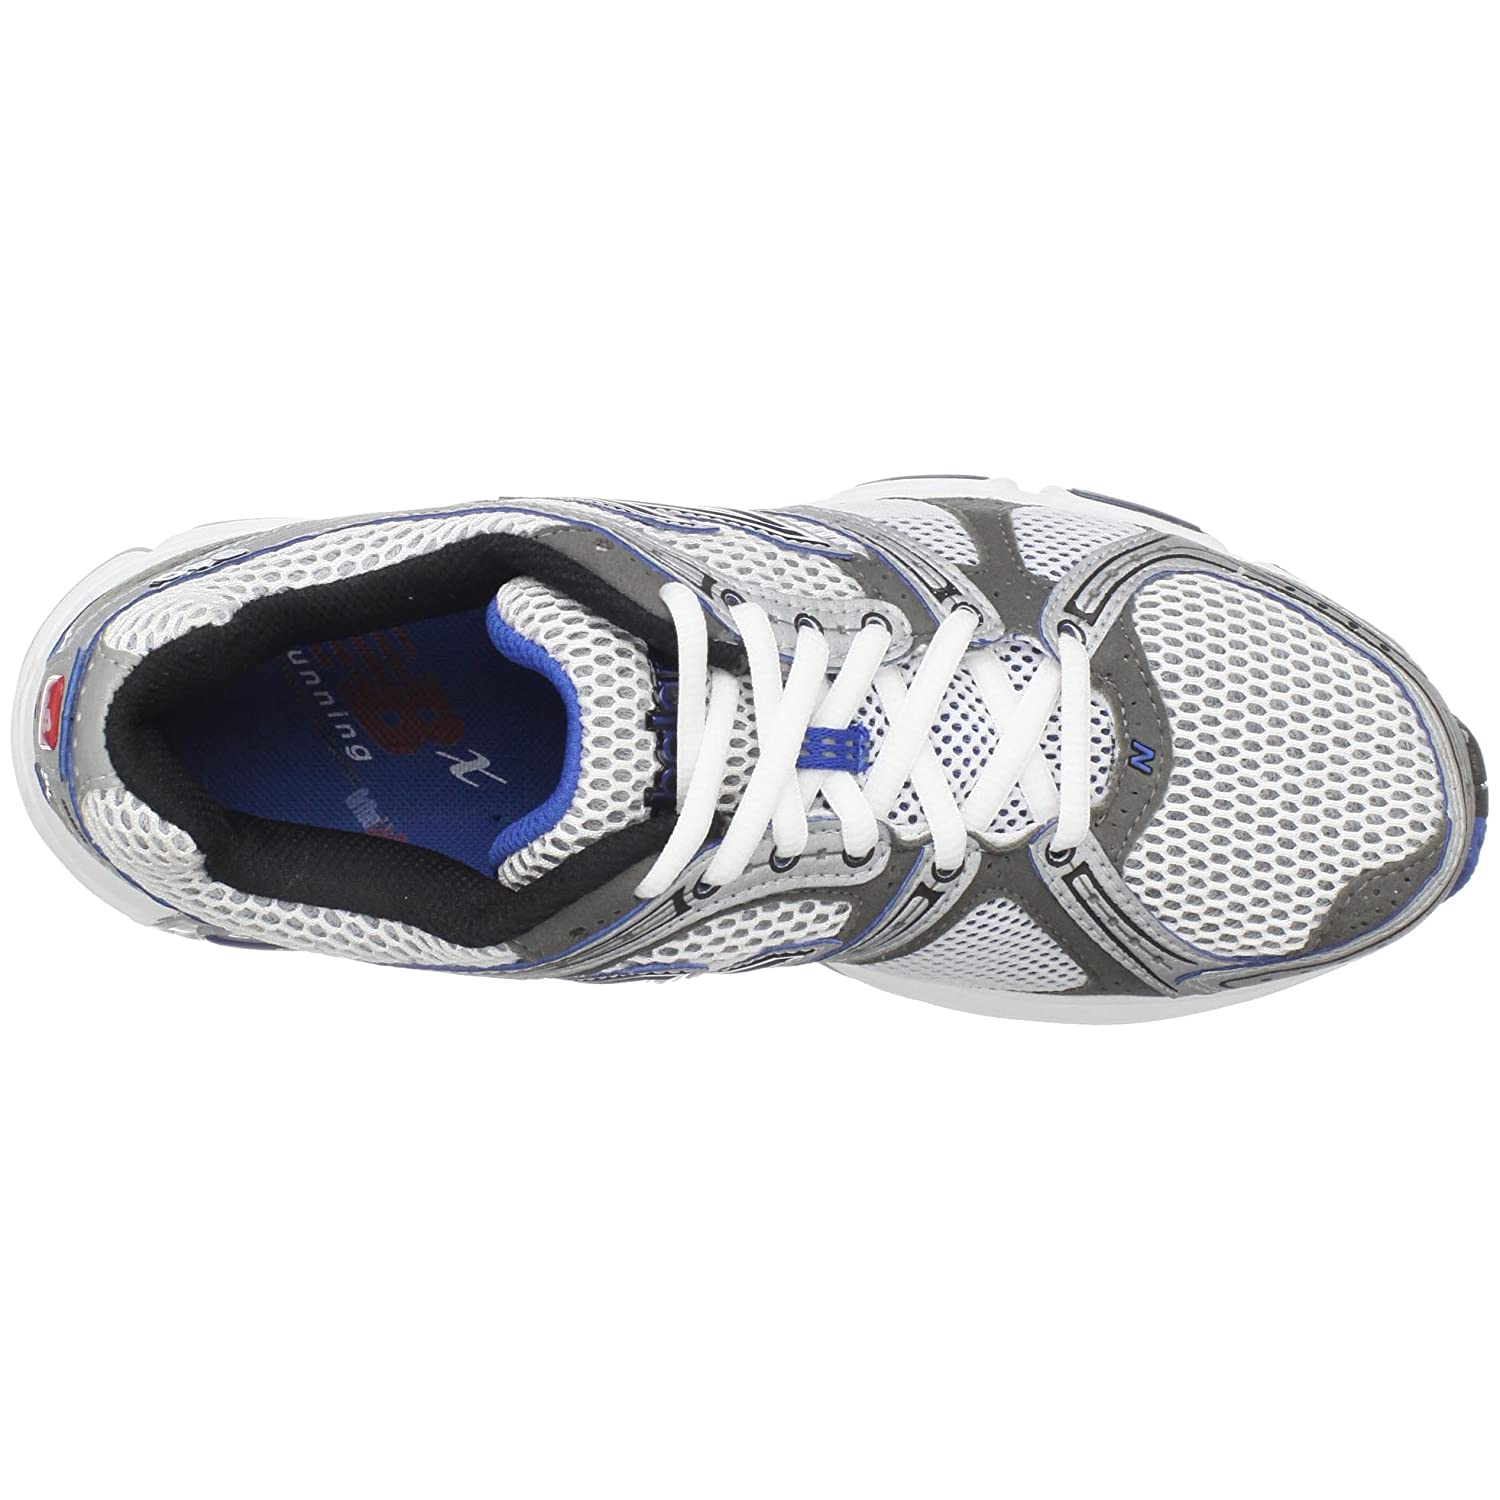 New Balance Zapatillas Running 940 Blanco/Plata/Azul EU 45.5 (US 11.5): Amazon.es: Zapatos y complementos